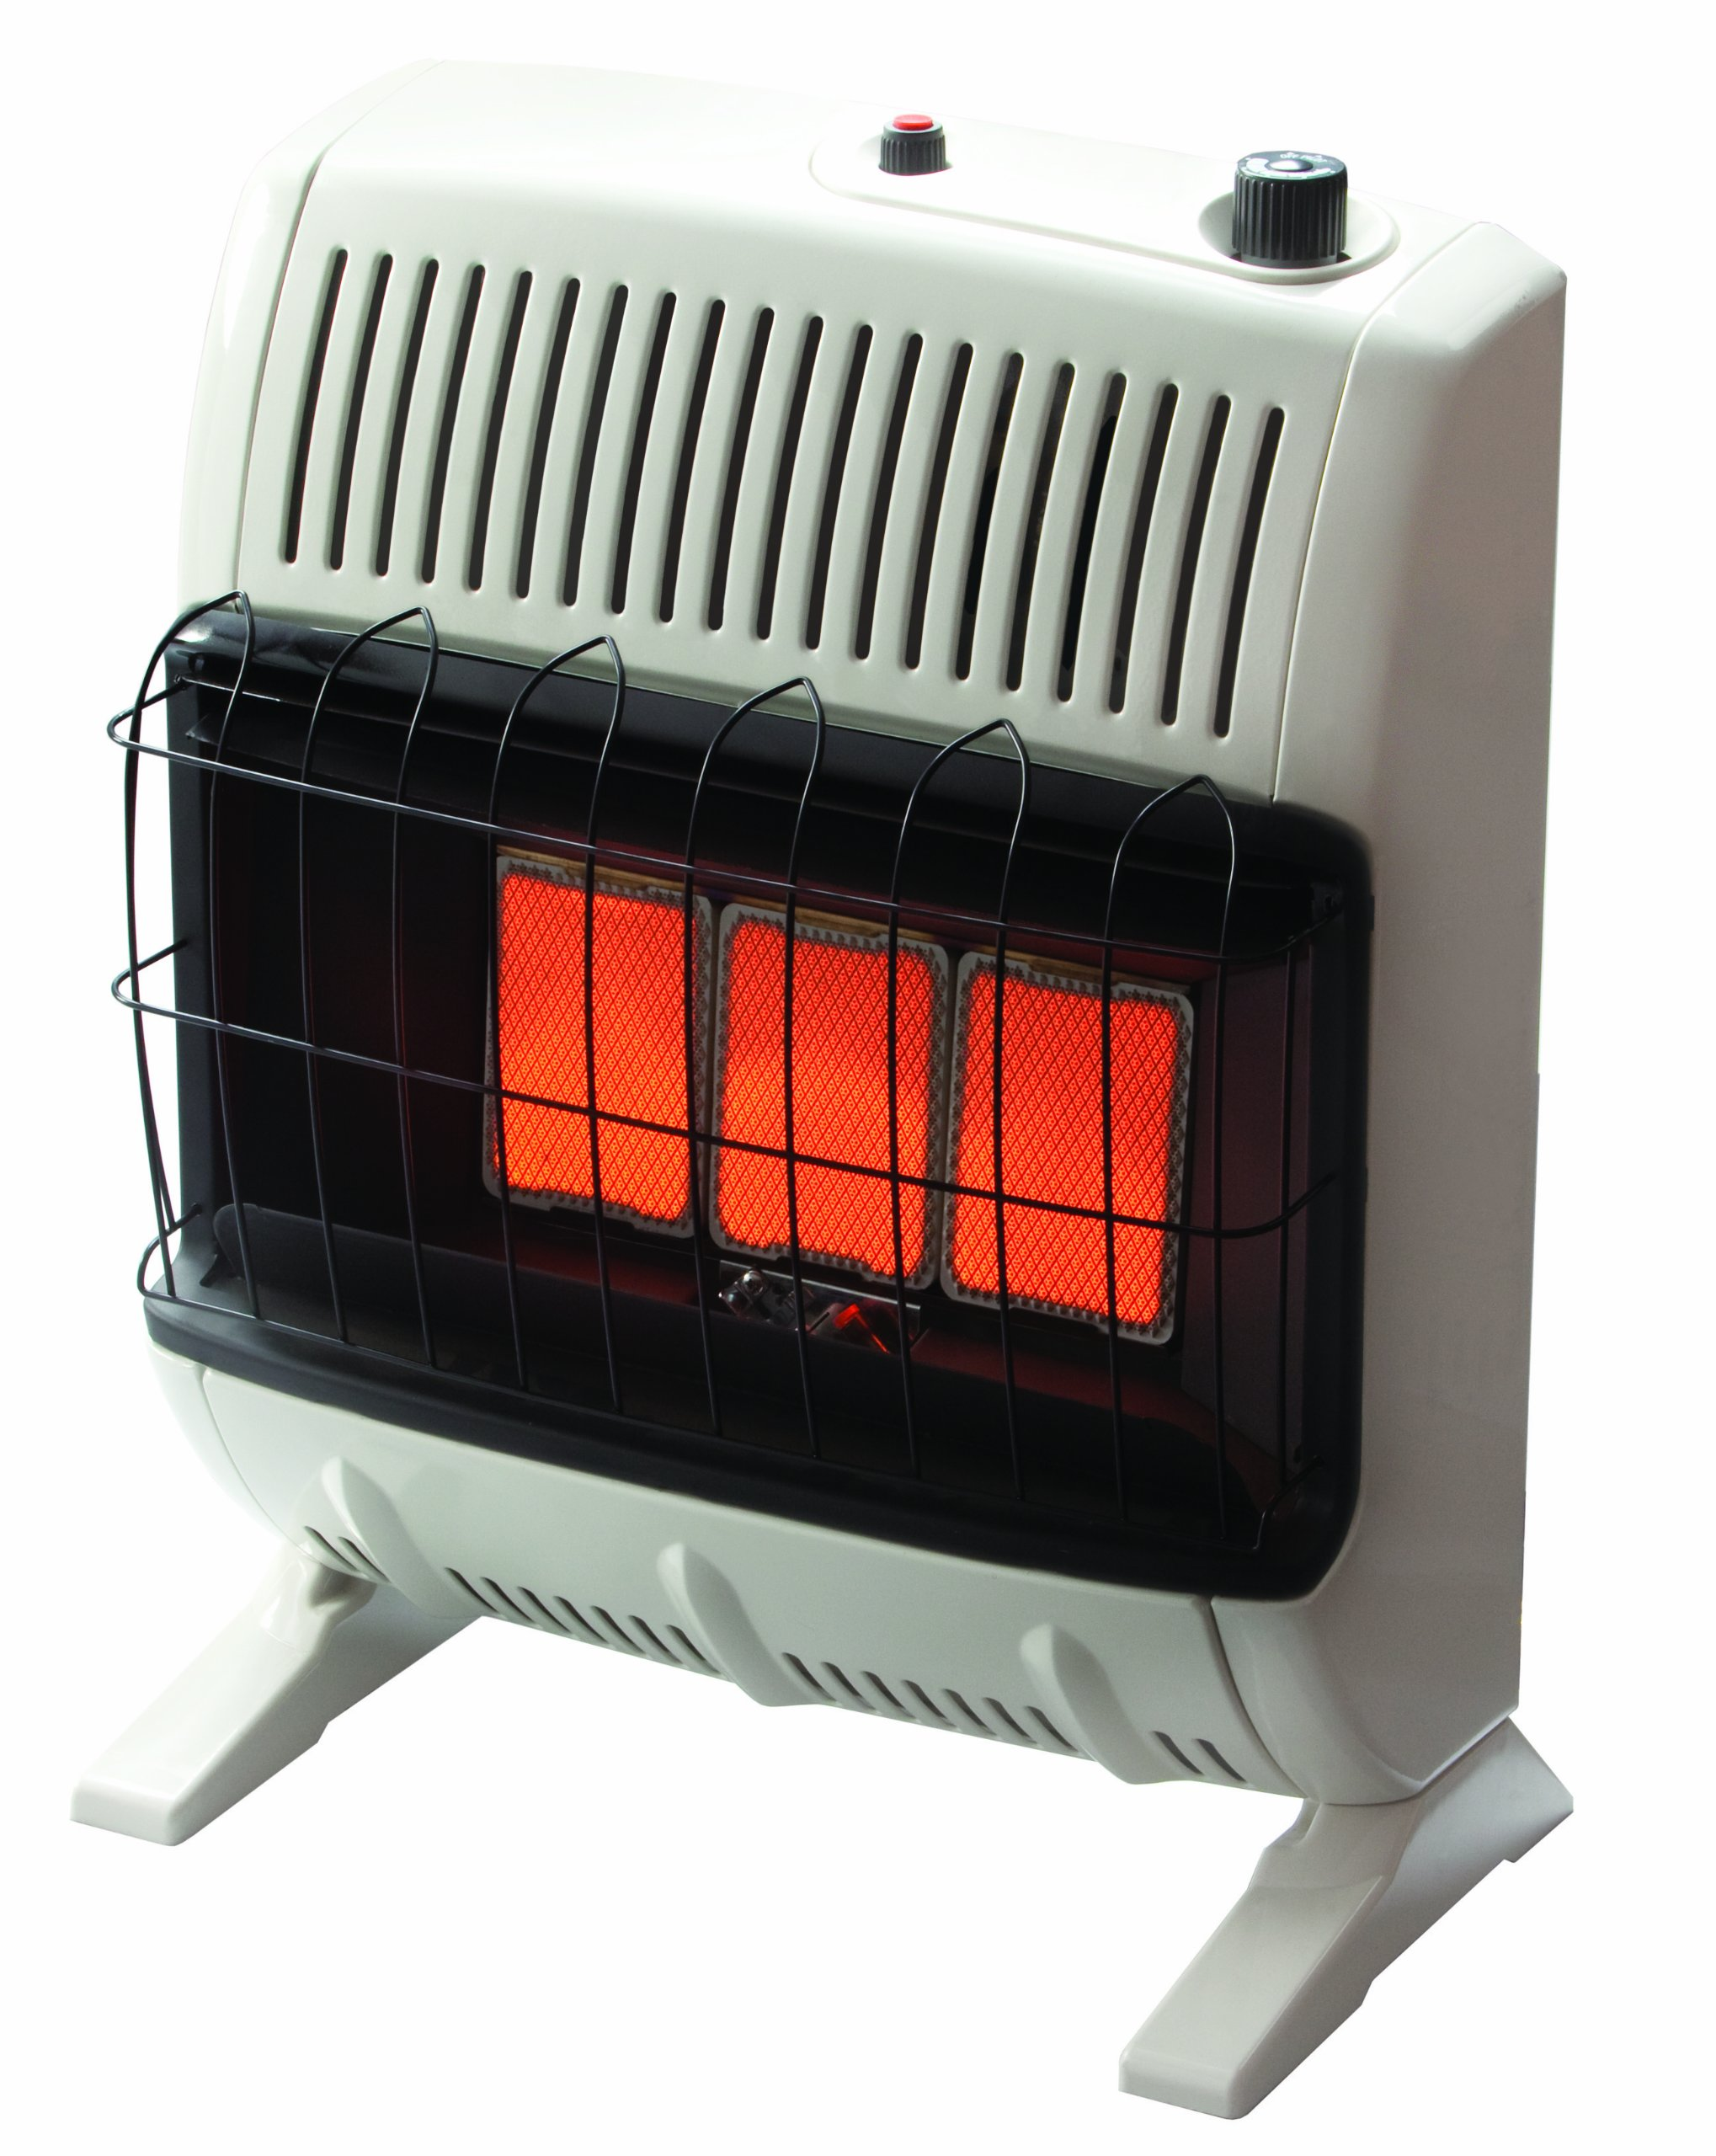 Heatstar By Enerco F156040 Ventfree Infrared Natural Gas Heater with Thermostat HSVFR20NGBT, 20K by Heatstar By Enerco